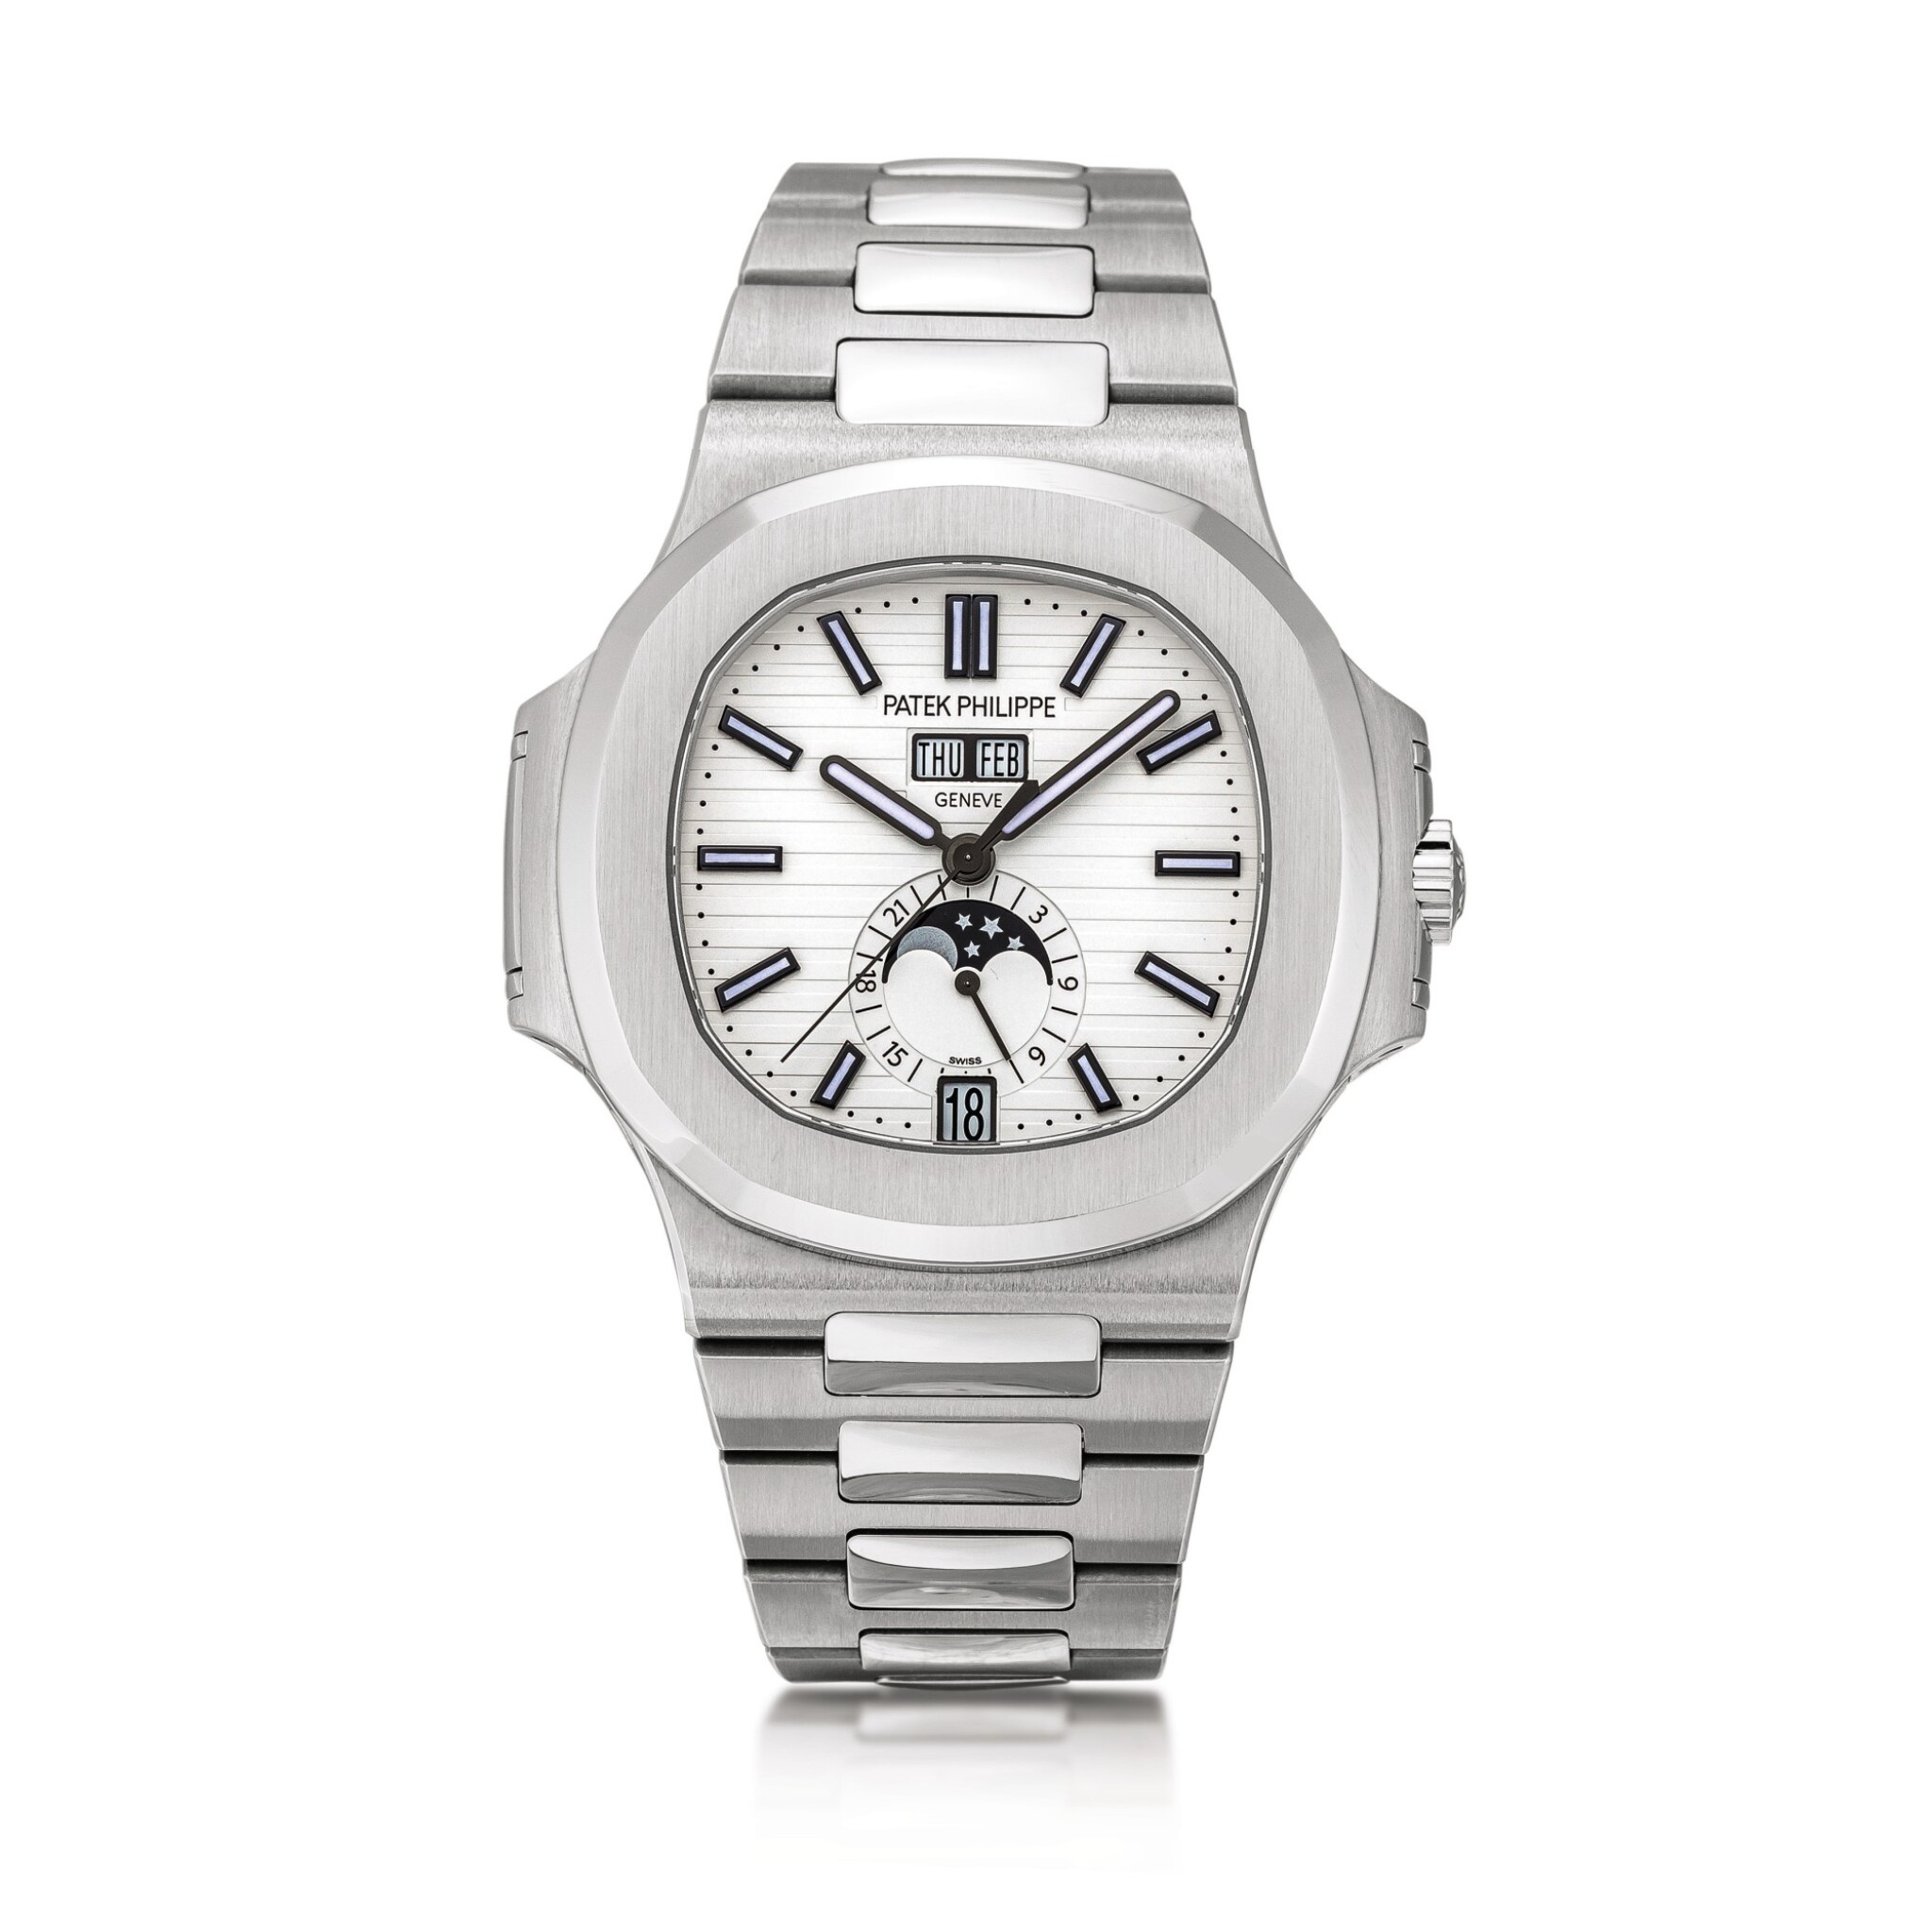 View full screen - View 1 of Lot 2098. Patek Philippe | Nautilus, Reference 5726, A stainless steel annual calendar bracelet watch with moon phases and 24 hours indication, Circa 2019 | 百達翡麗 | Nautilus 型號5726   精鋼年曆鏈帶腕錶,備月相及24小時顯示,約2019年製.